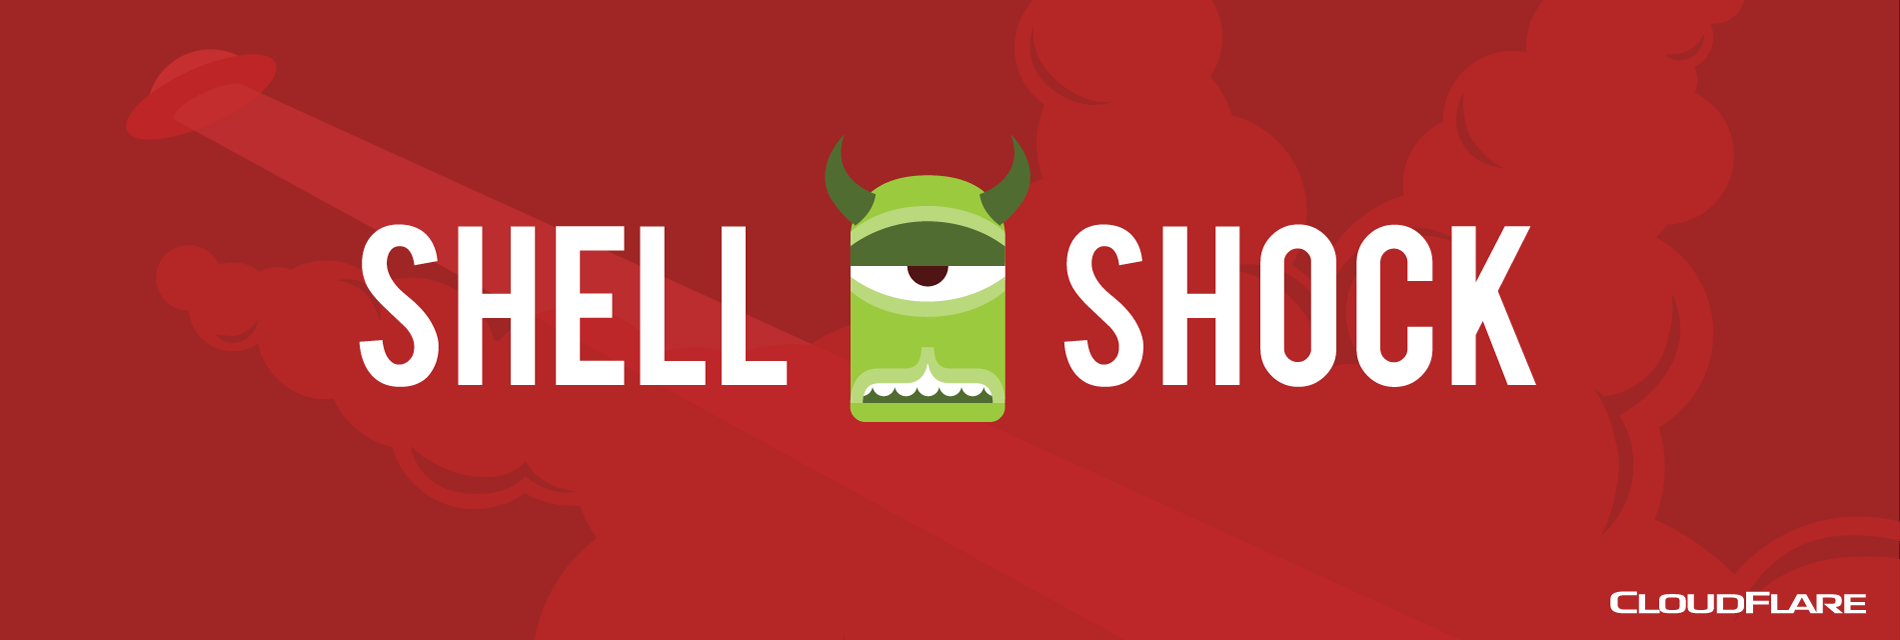 Inside Shellshock: How hackers are using it to exploit systems